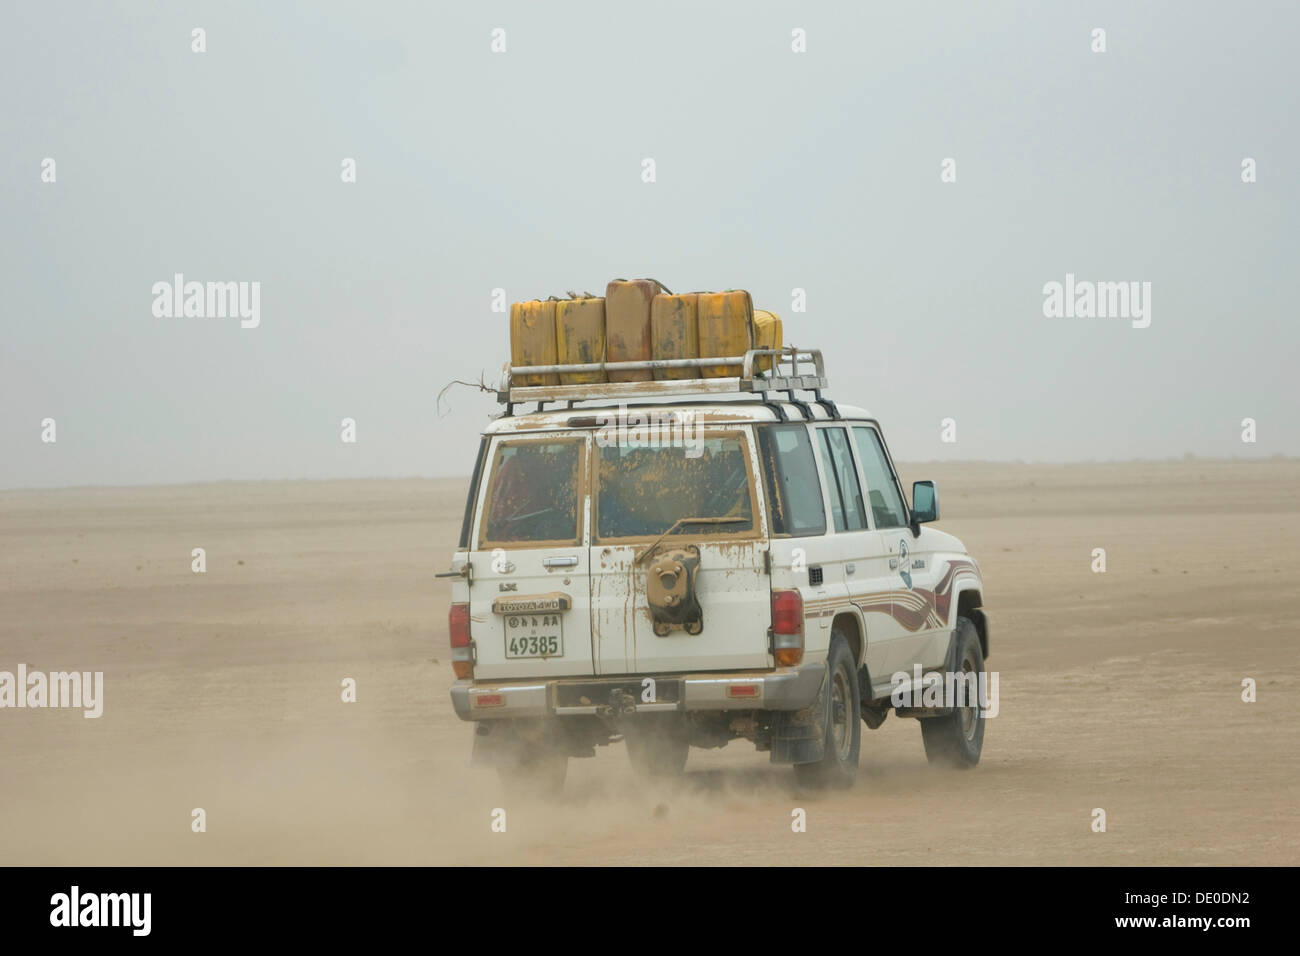 Travel in an off-road vehicle in the Danakil Depression between Afdera and Ertale - Stock Image